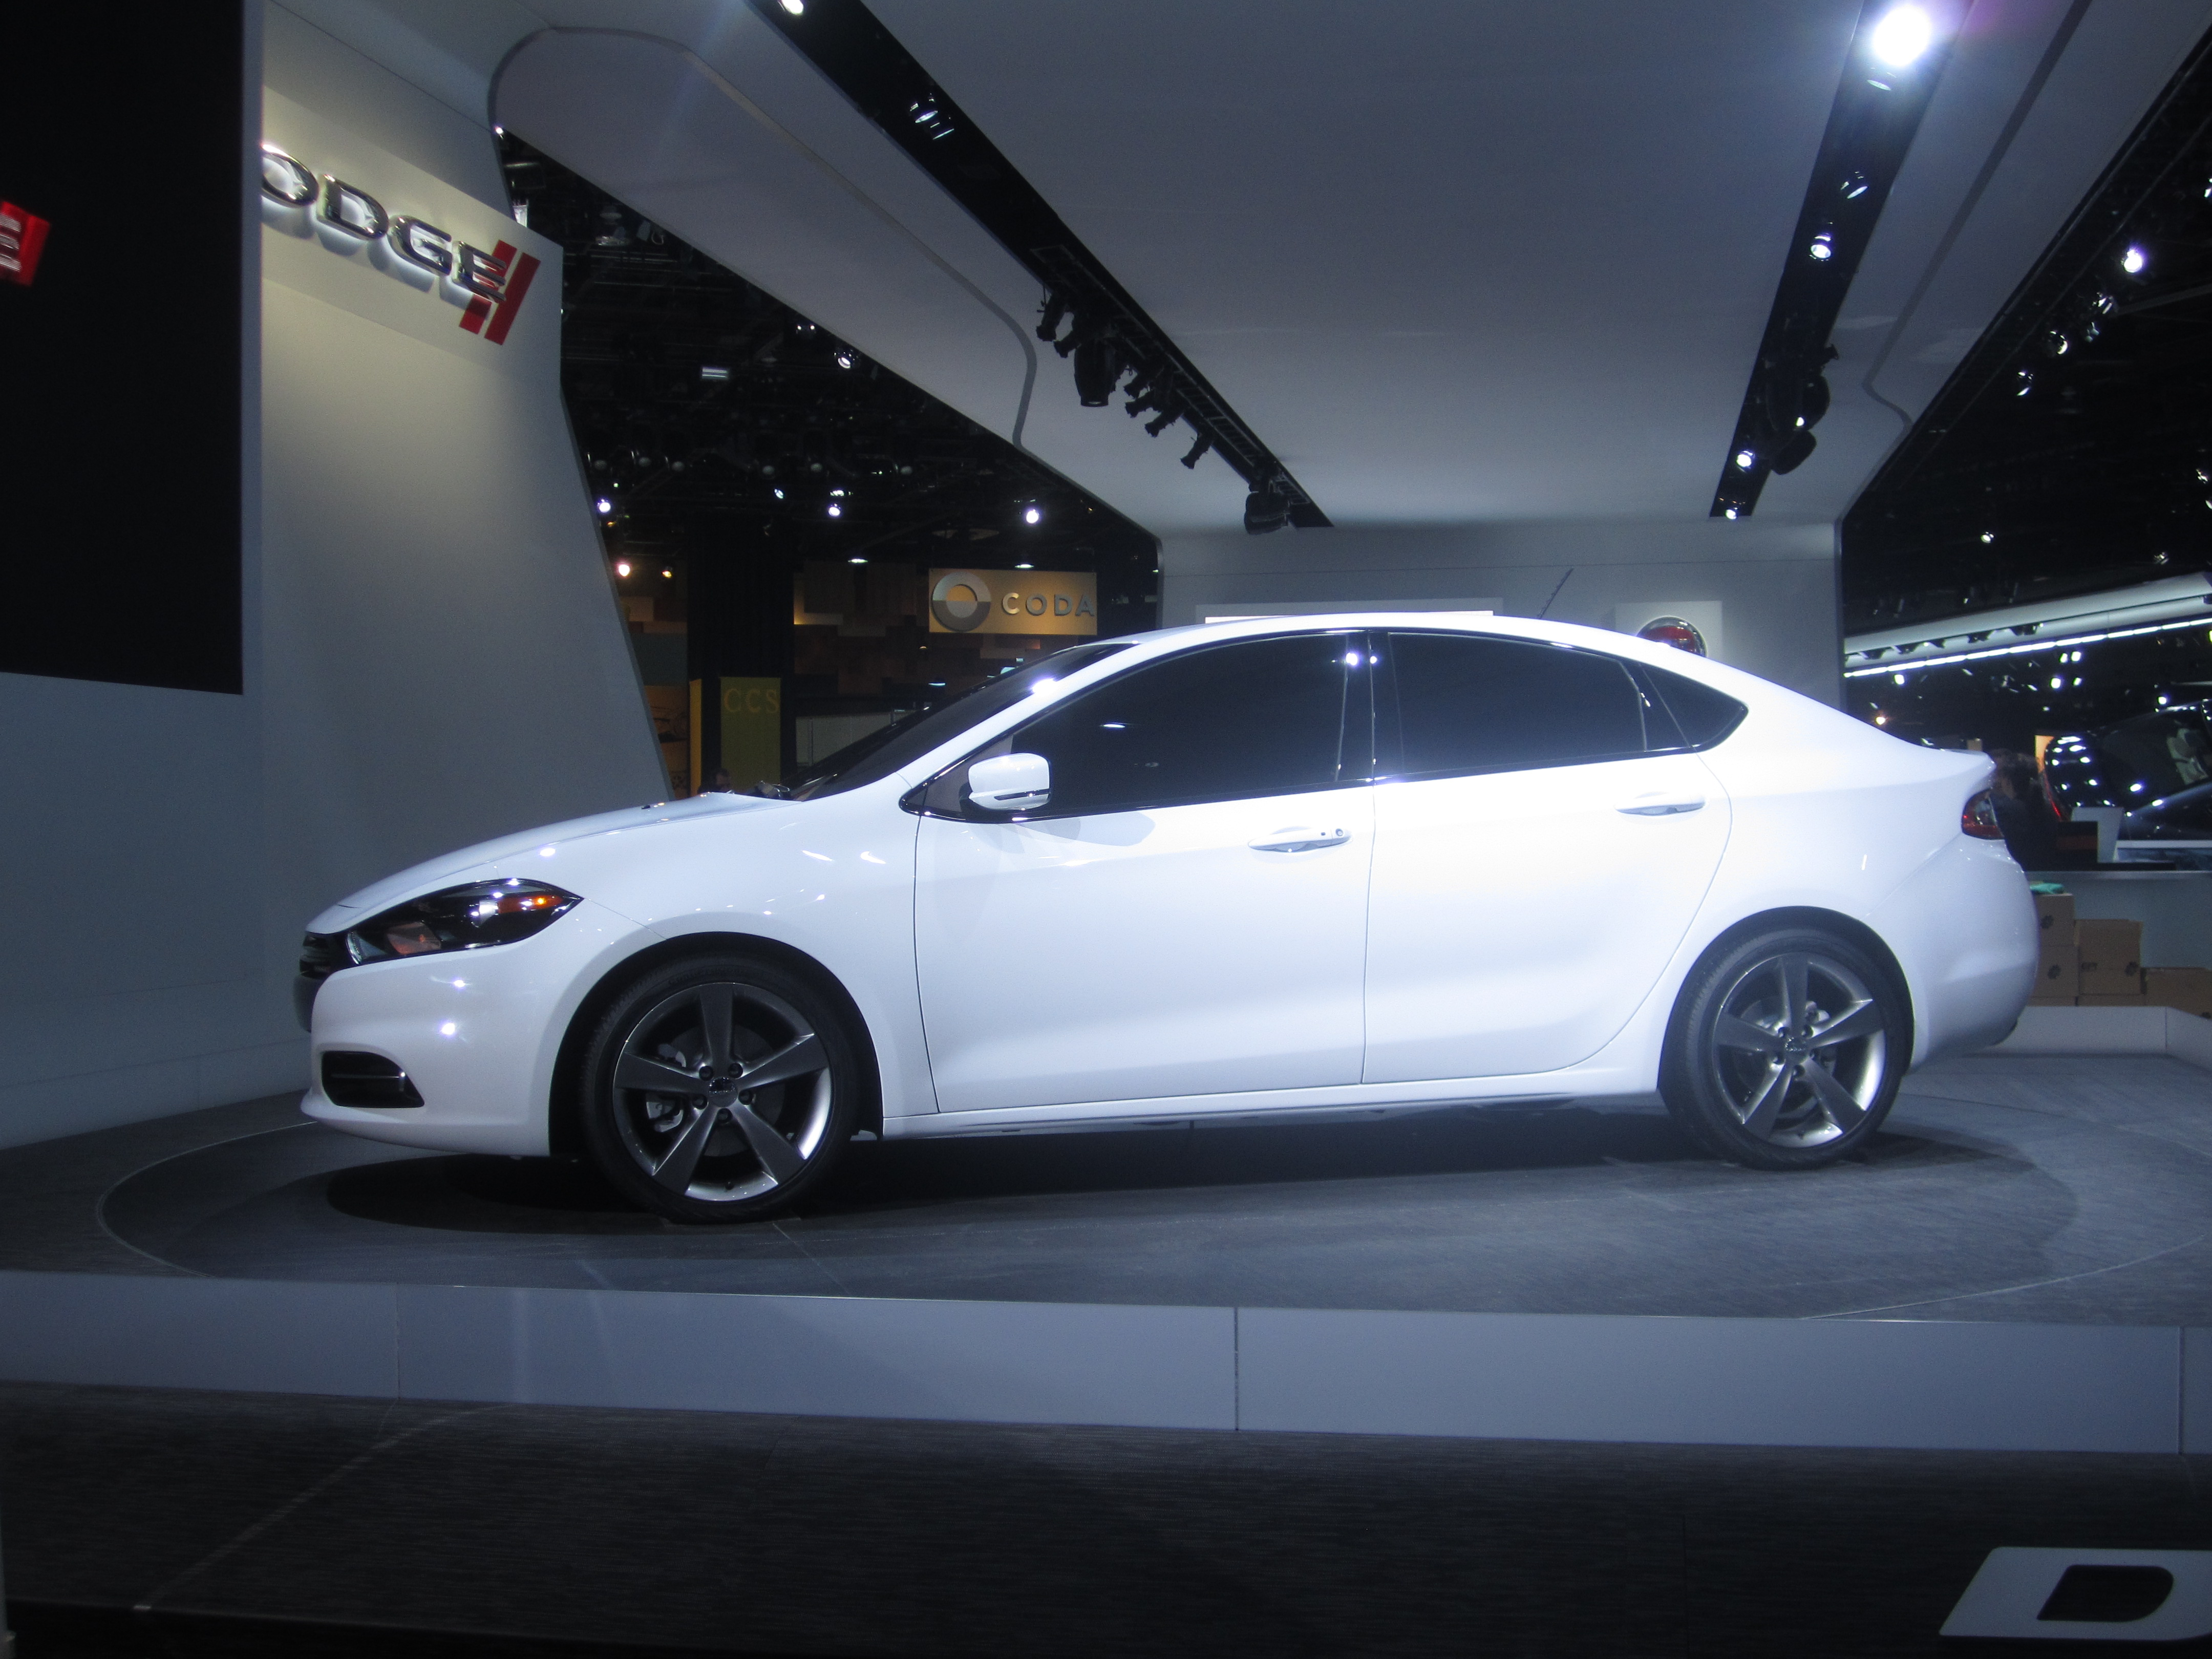 File:2013 Dodge Dart RT based on Alfa Romeo Giulietta.jpg ...